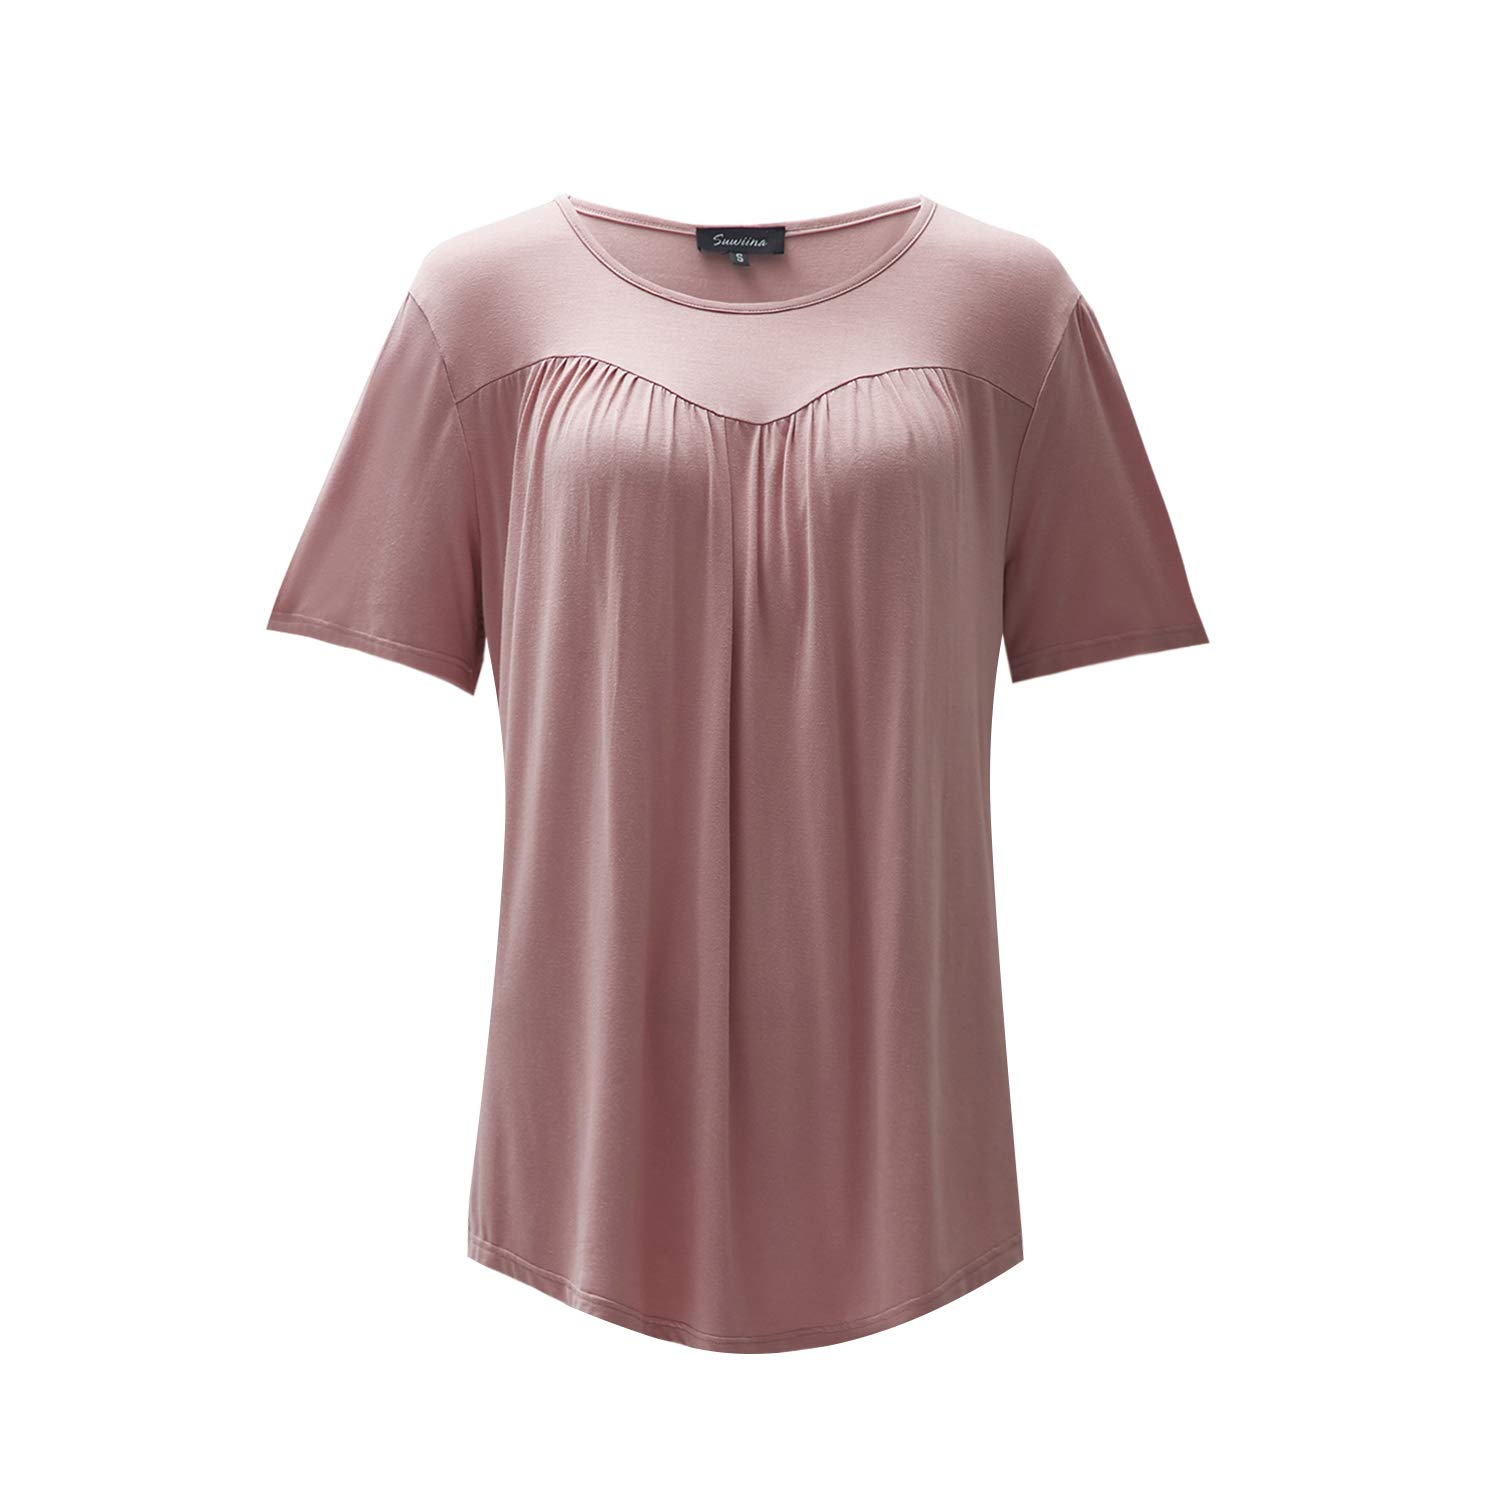 SUWIINA Women Pleated Front Short Sleeve Blouse Round Neck Casual Flare Tunic Top Shirt Pink